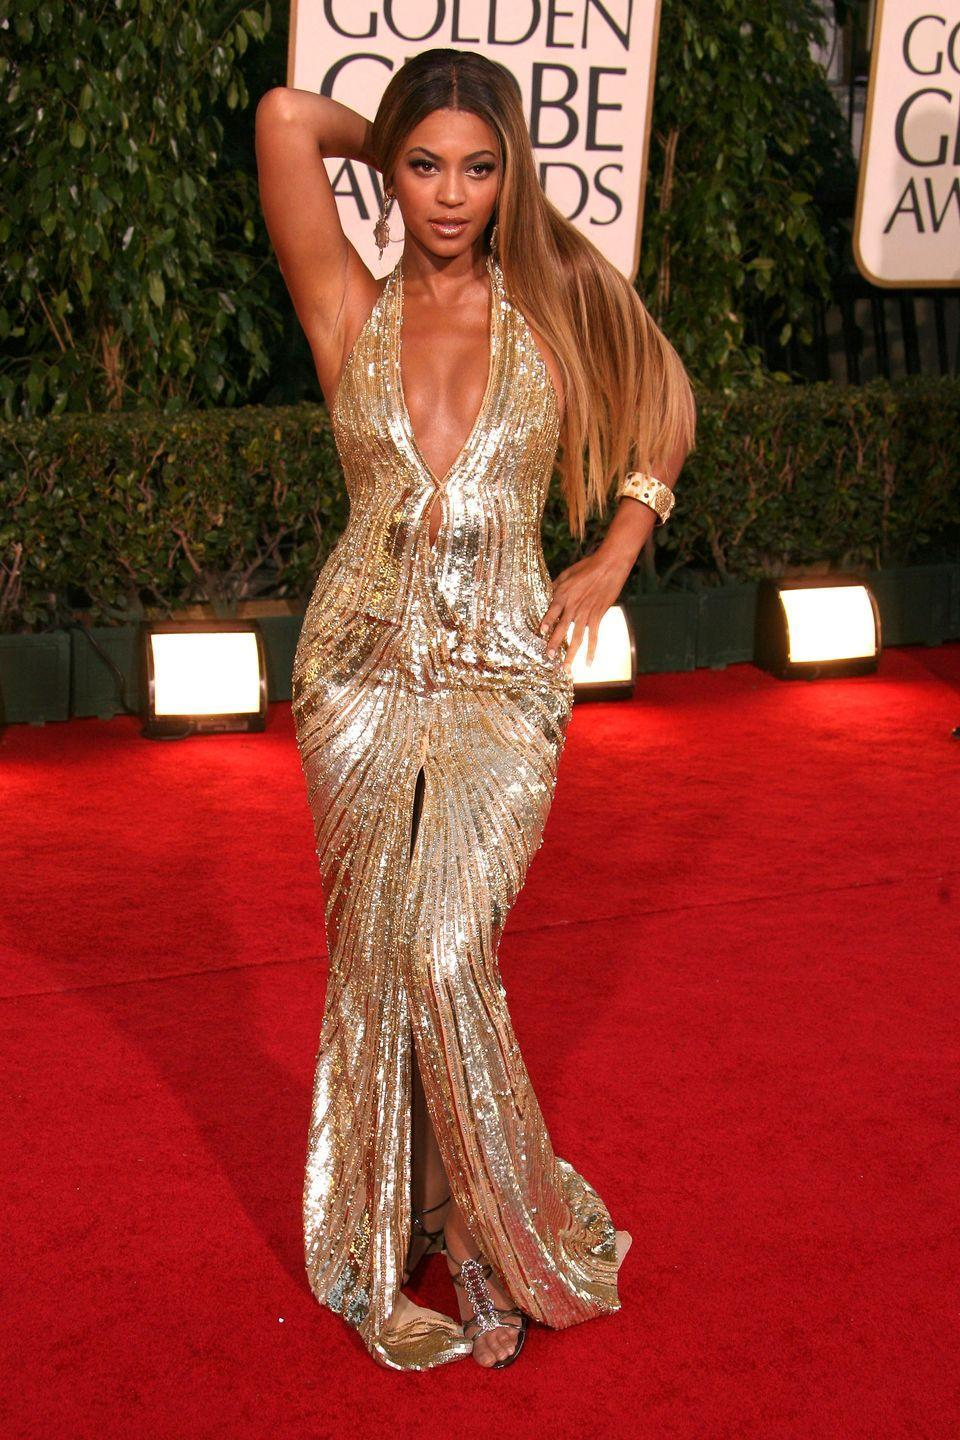 <p>The dress, the pose, could anyone forget this epic Elie Saab moment in 2007?</p>